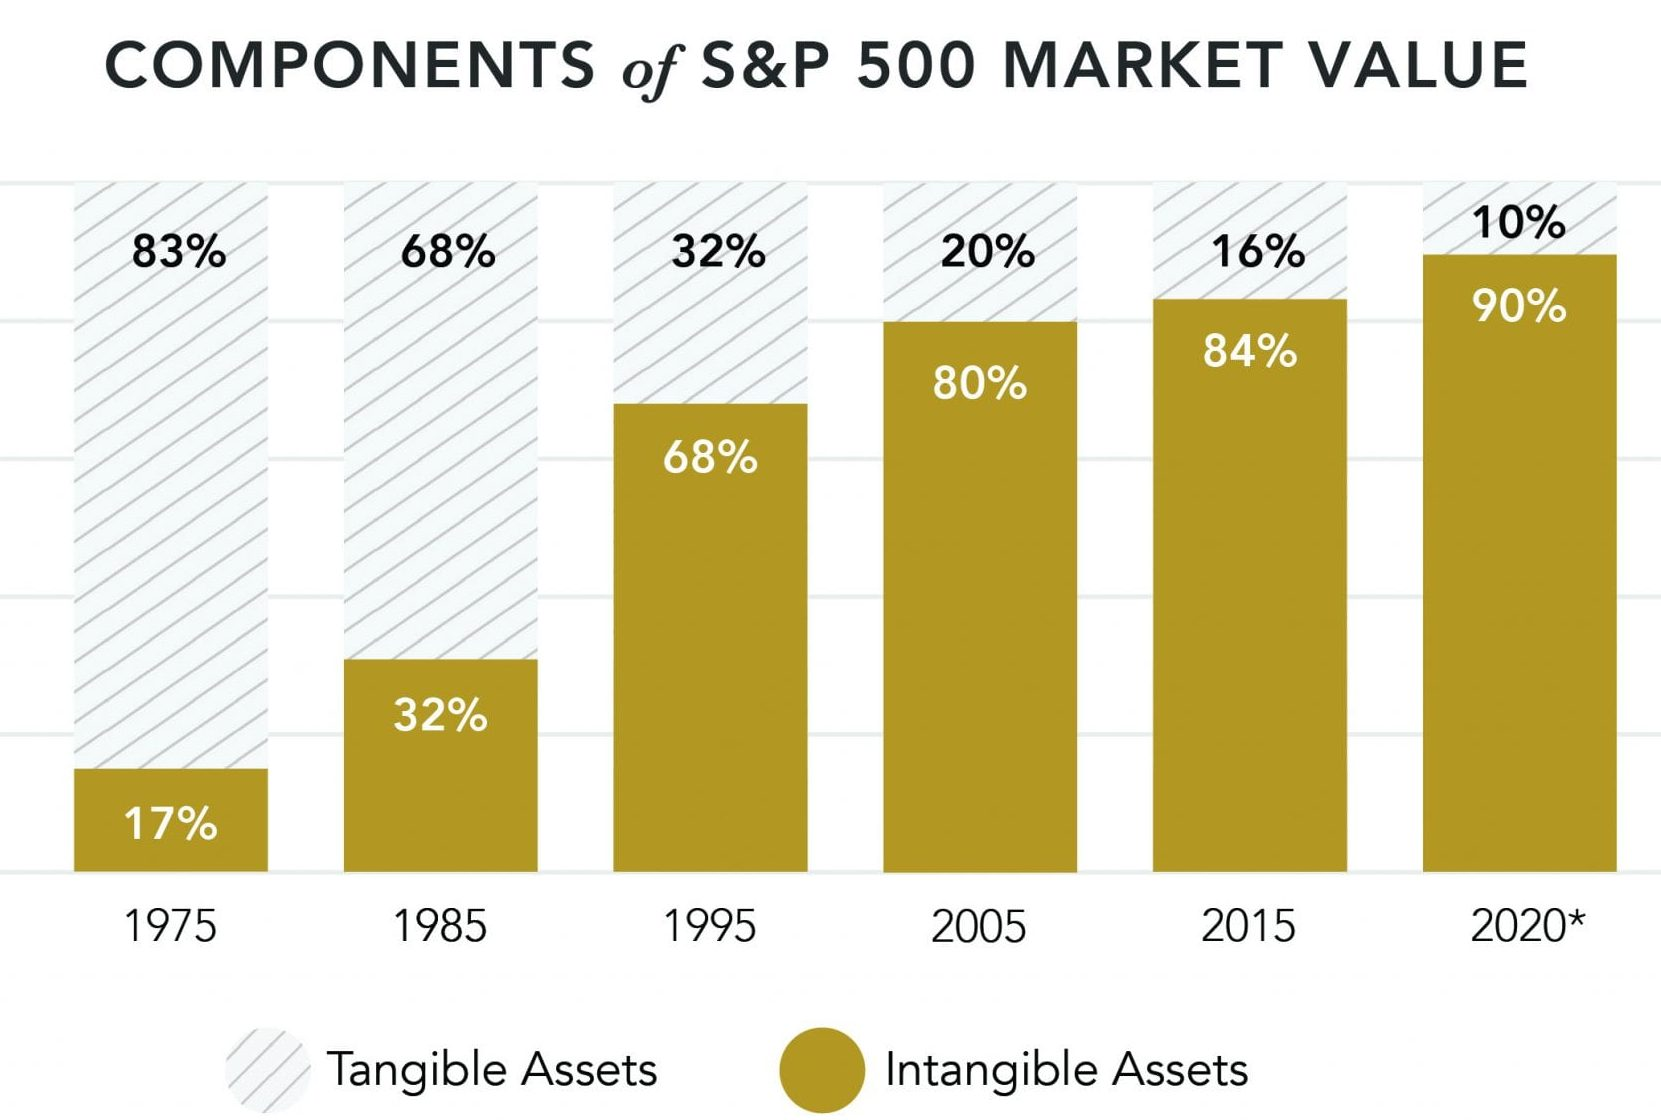 Intangible Assets in S&P500